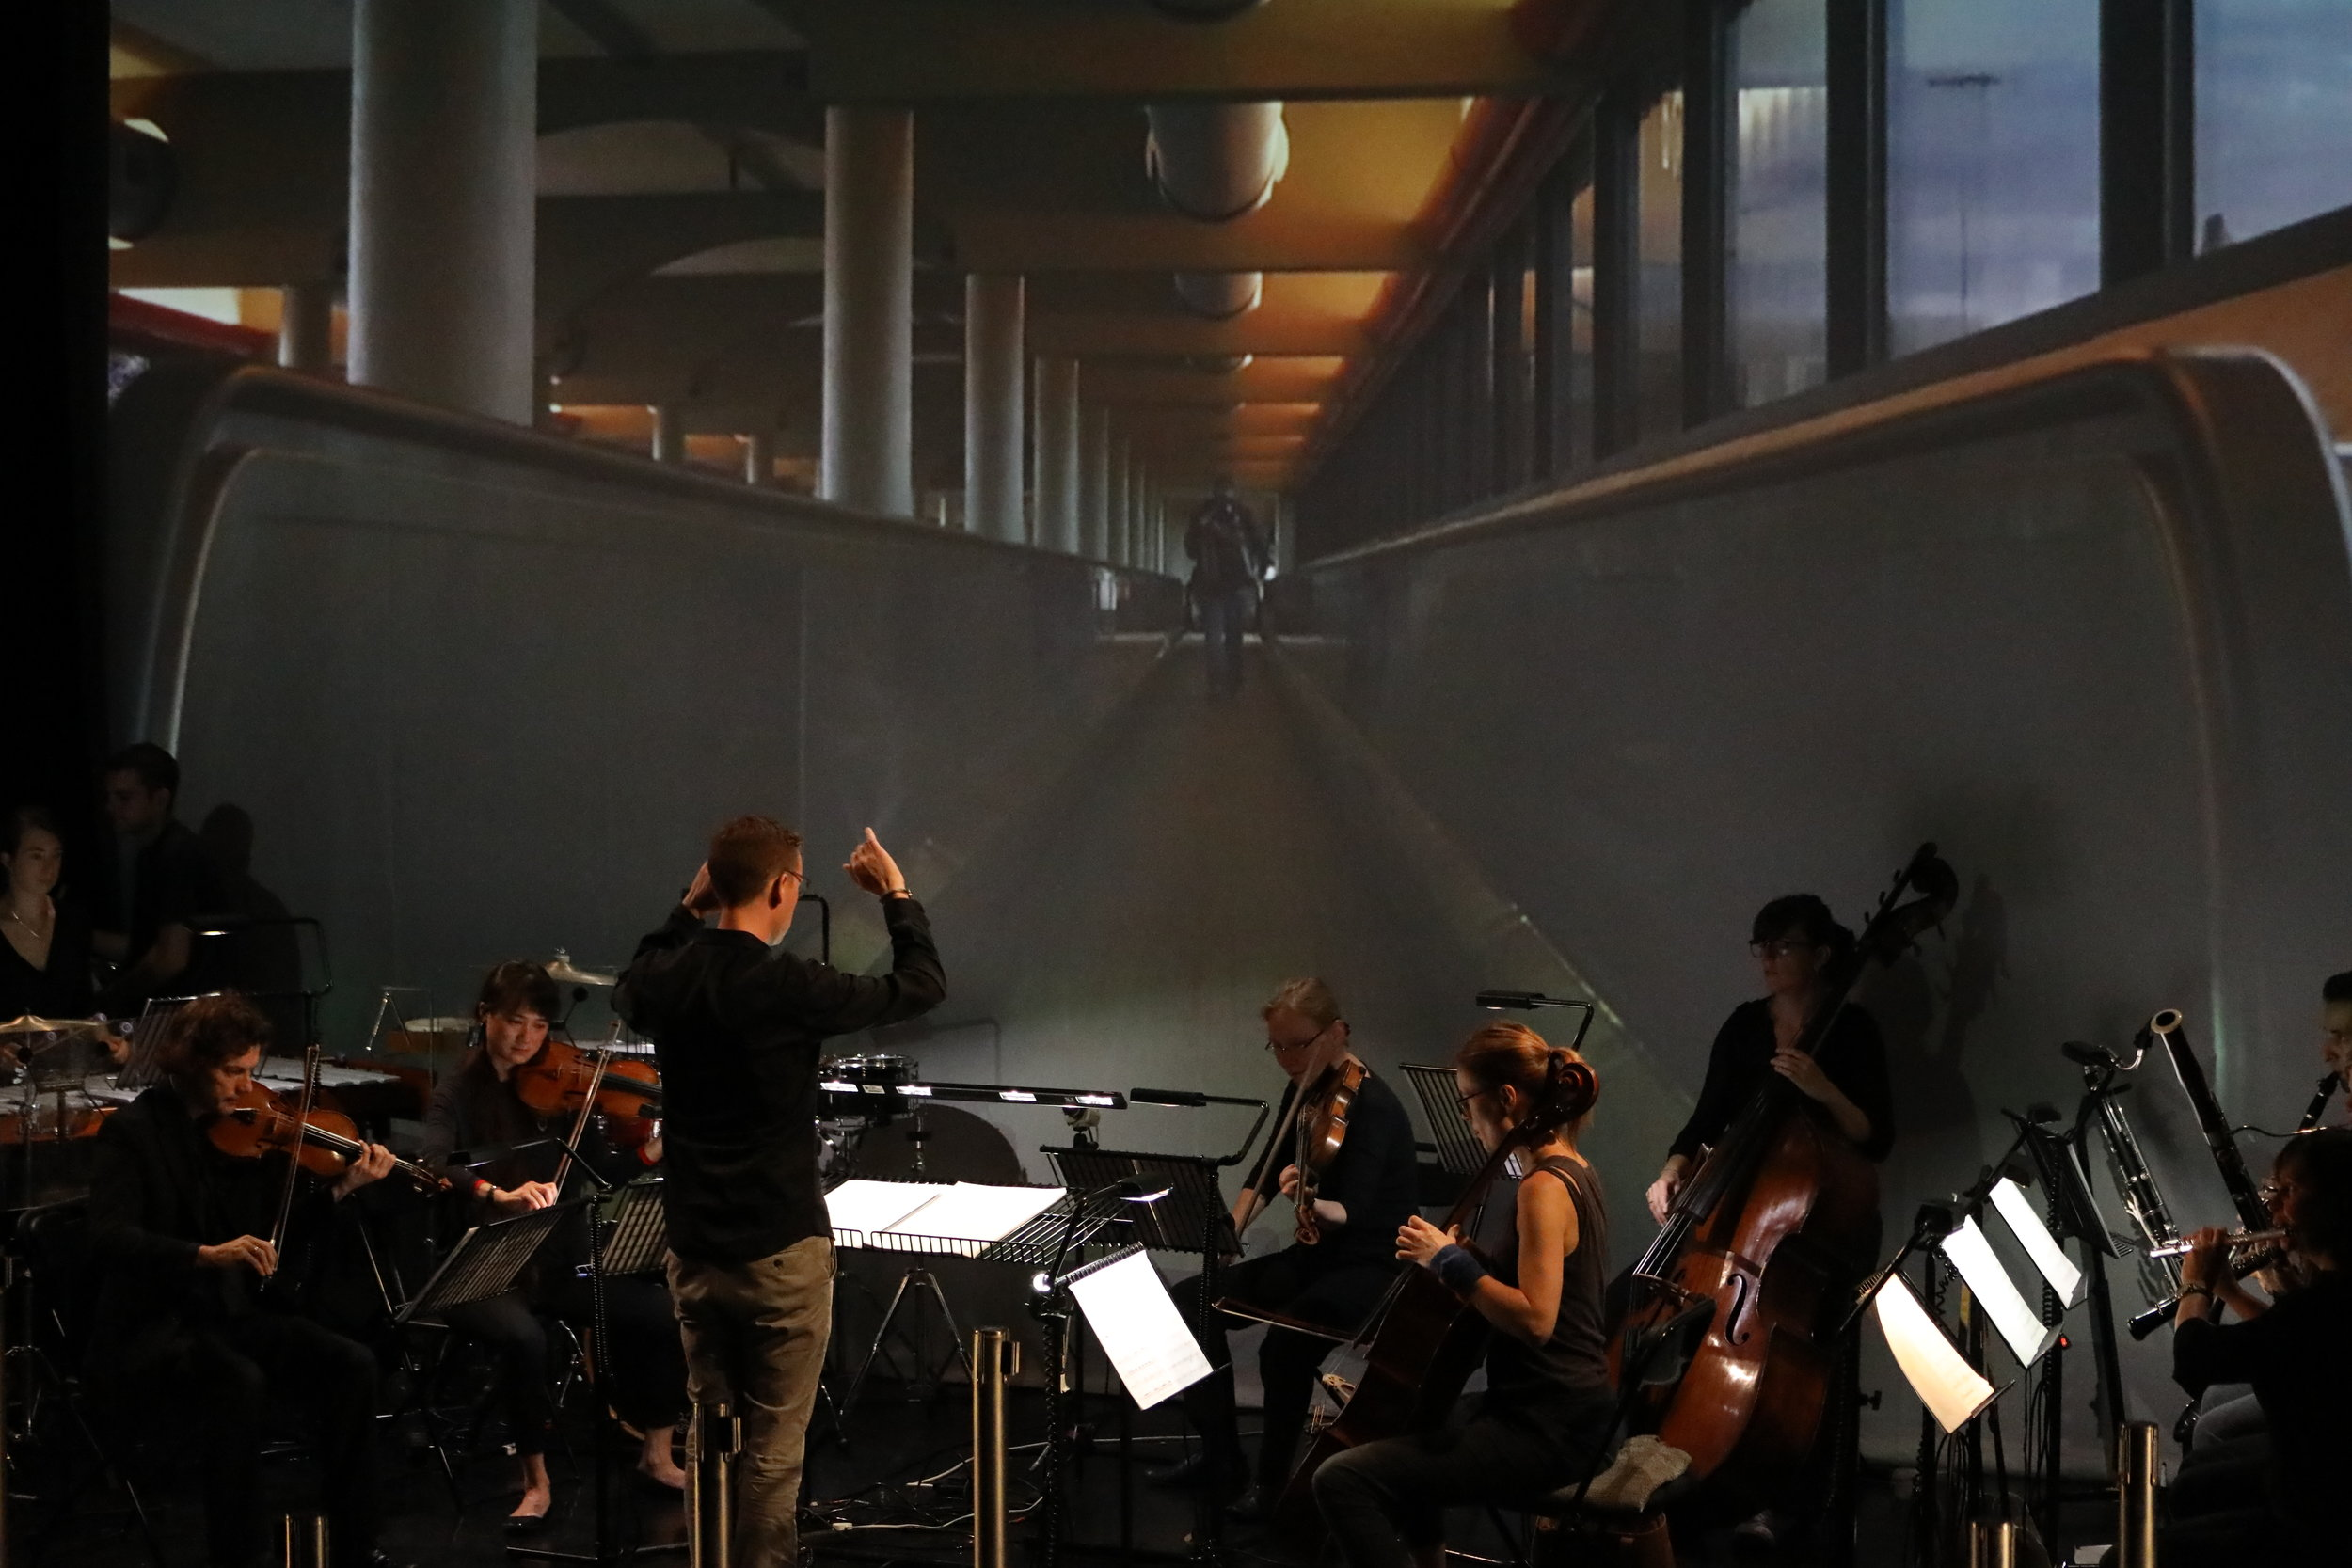 """CHROMA performing """"ID Please"""", Daniel Nesta Curtis conducting. The Place, London 25 July 2017. photo by Claire Shovelton"""